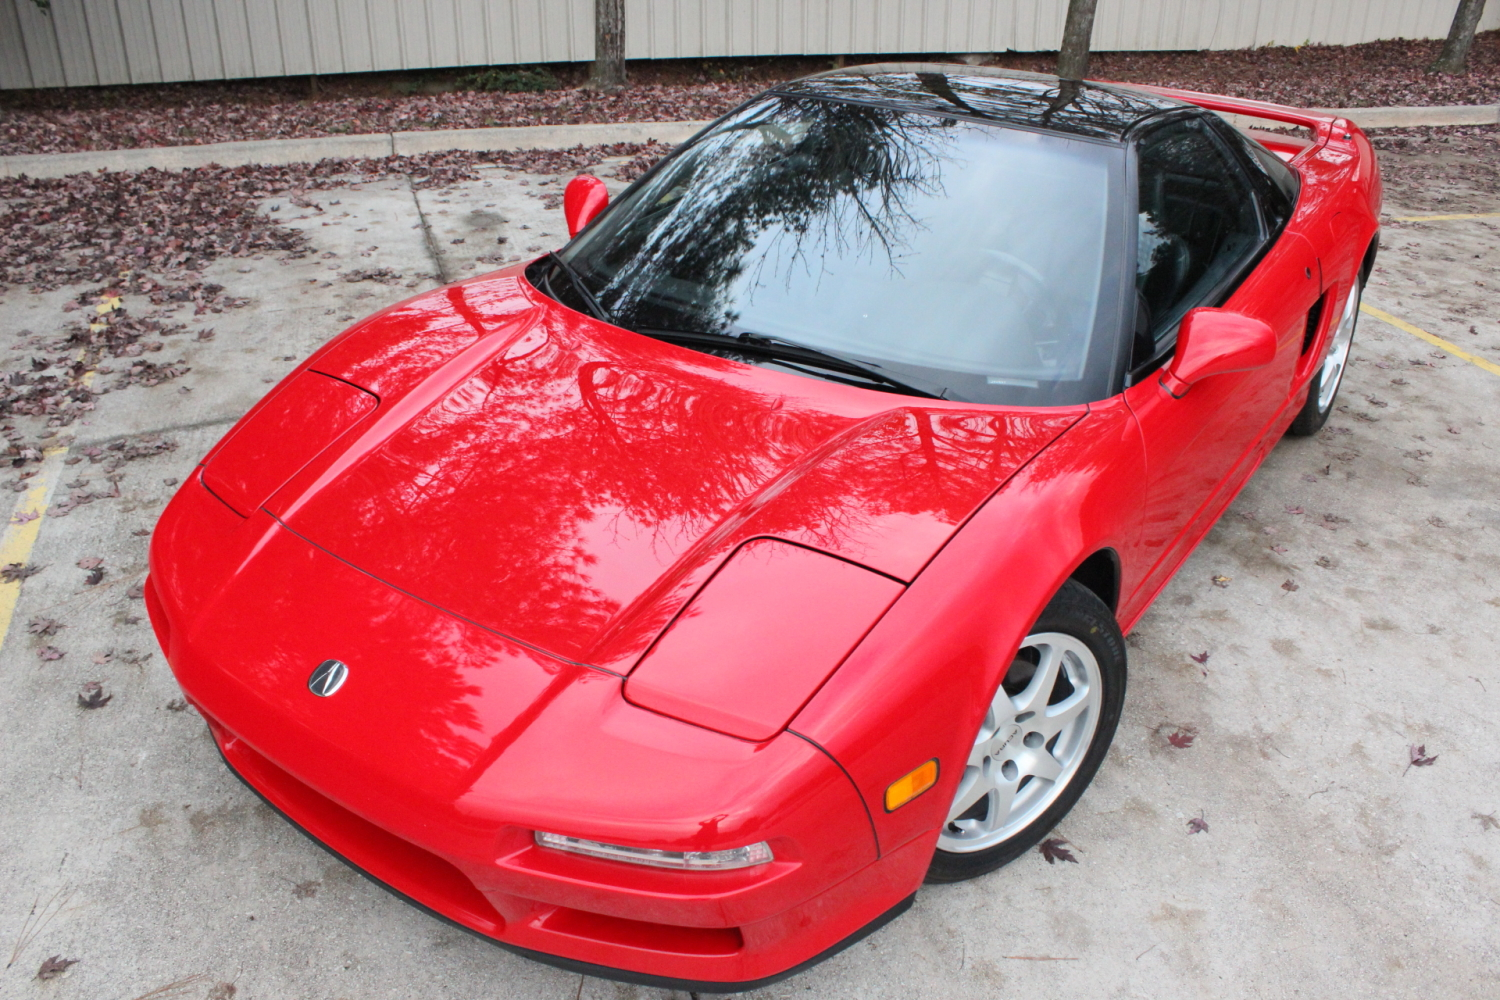 1992 Acura NSX in Formula Red over Black